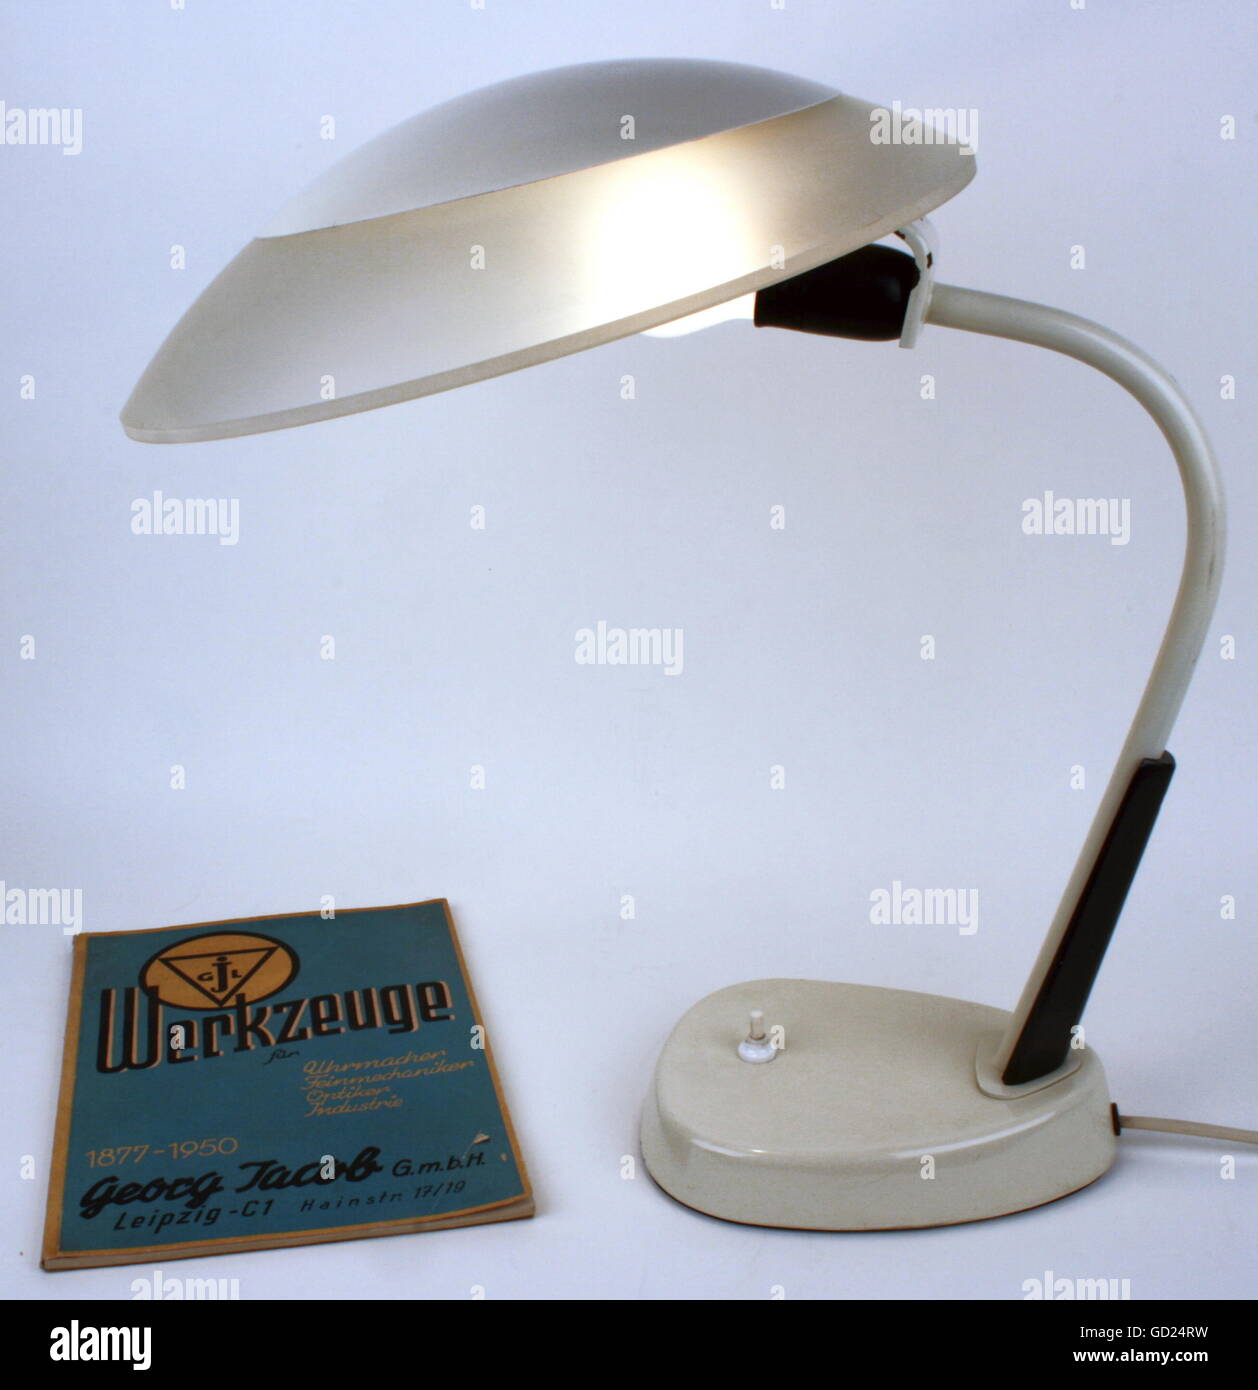 Lampenladen Leipzig Lamps Objects Stockfotos Lamps Objects Bilder Alamy